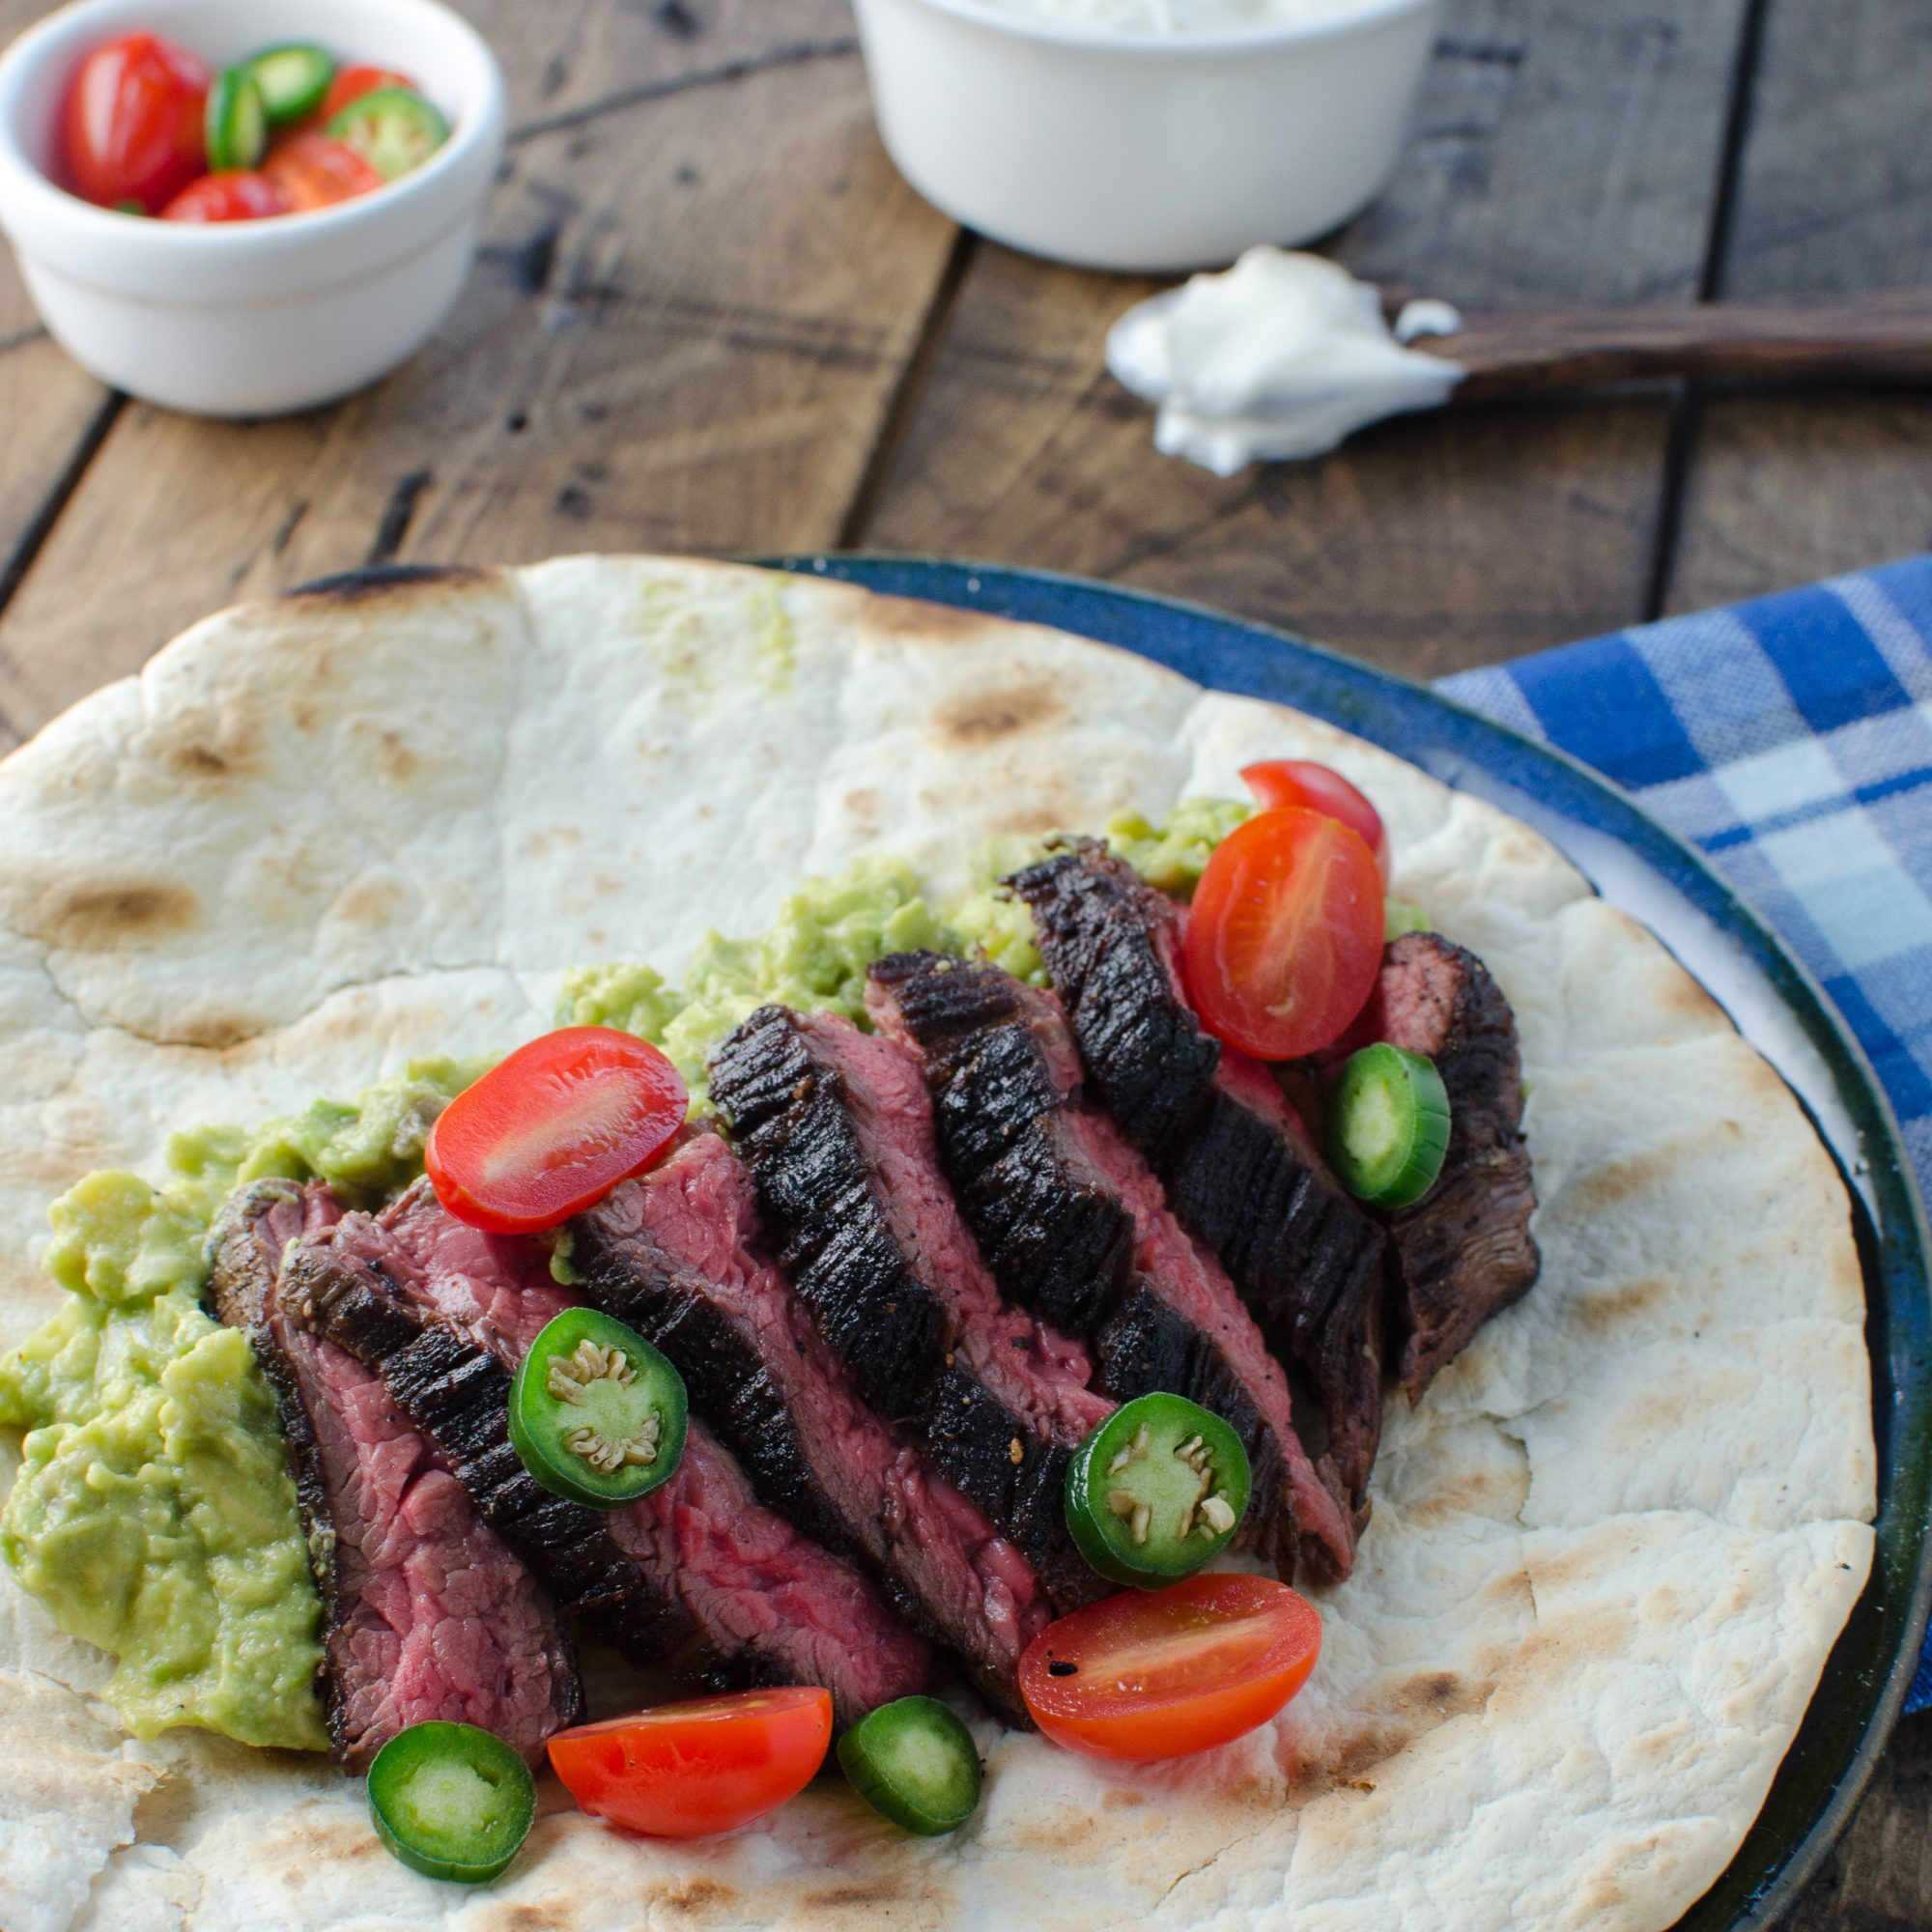 201404-r-flank-steak-burrito-with-guacamole.jpg